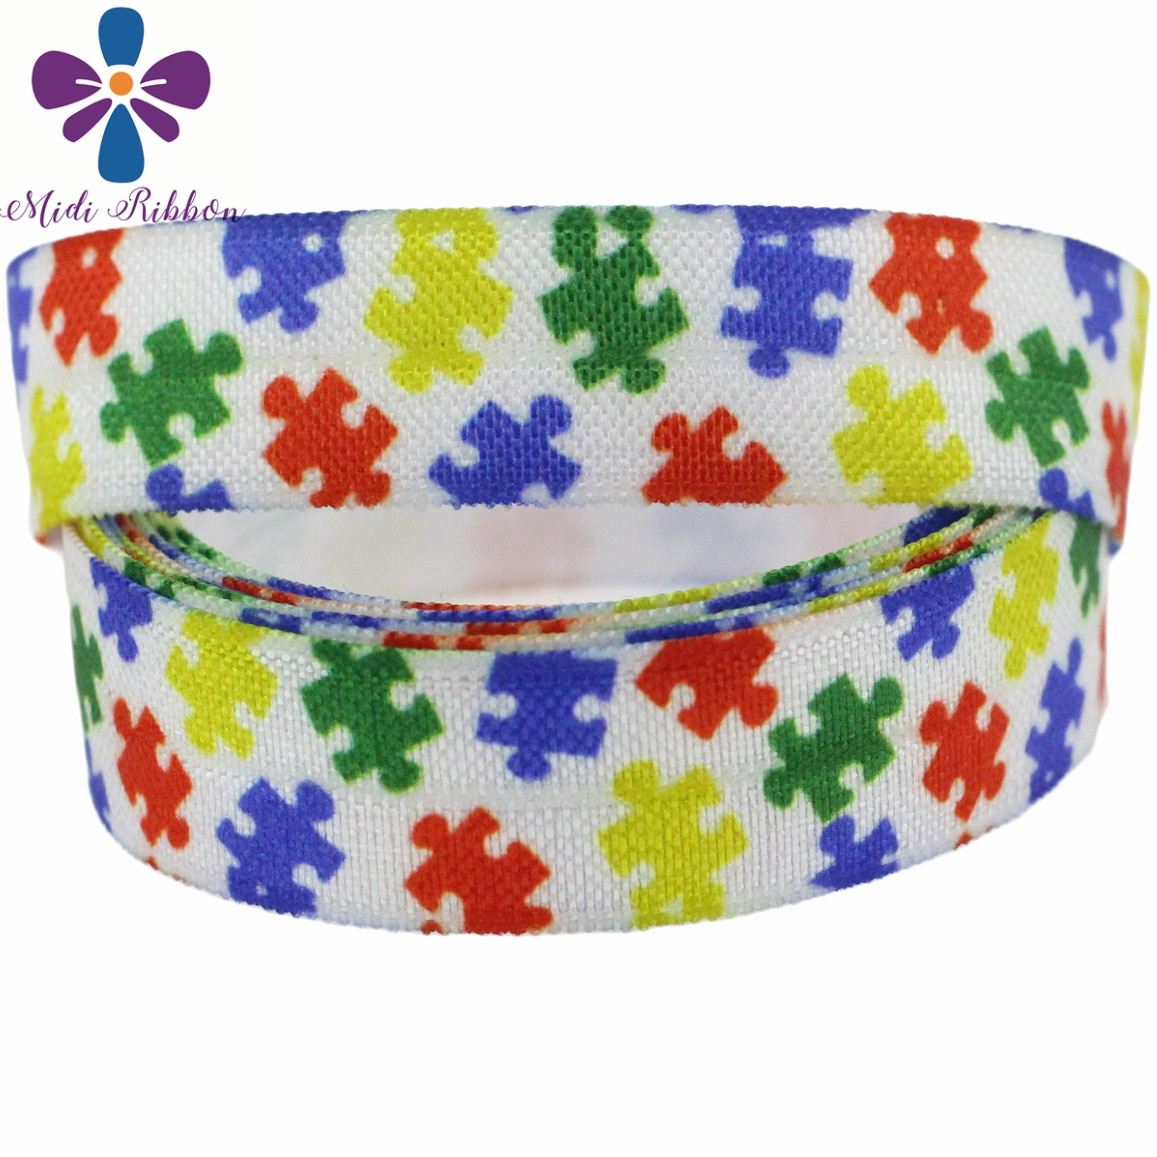 "5/8""16Mm Jigsaw Puzzle Series Heart Shapes Peace Printed Fold Over - Puzzle Print Ribbon"